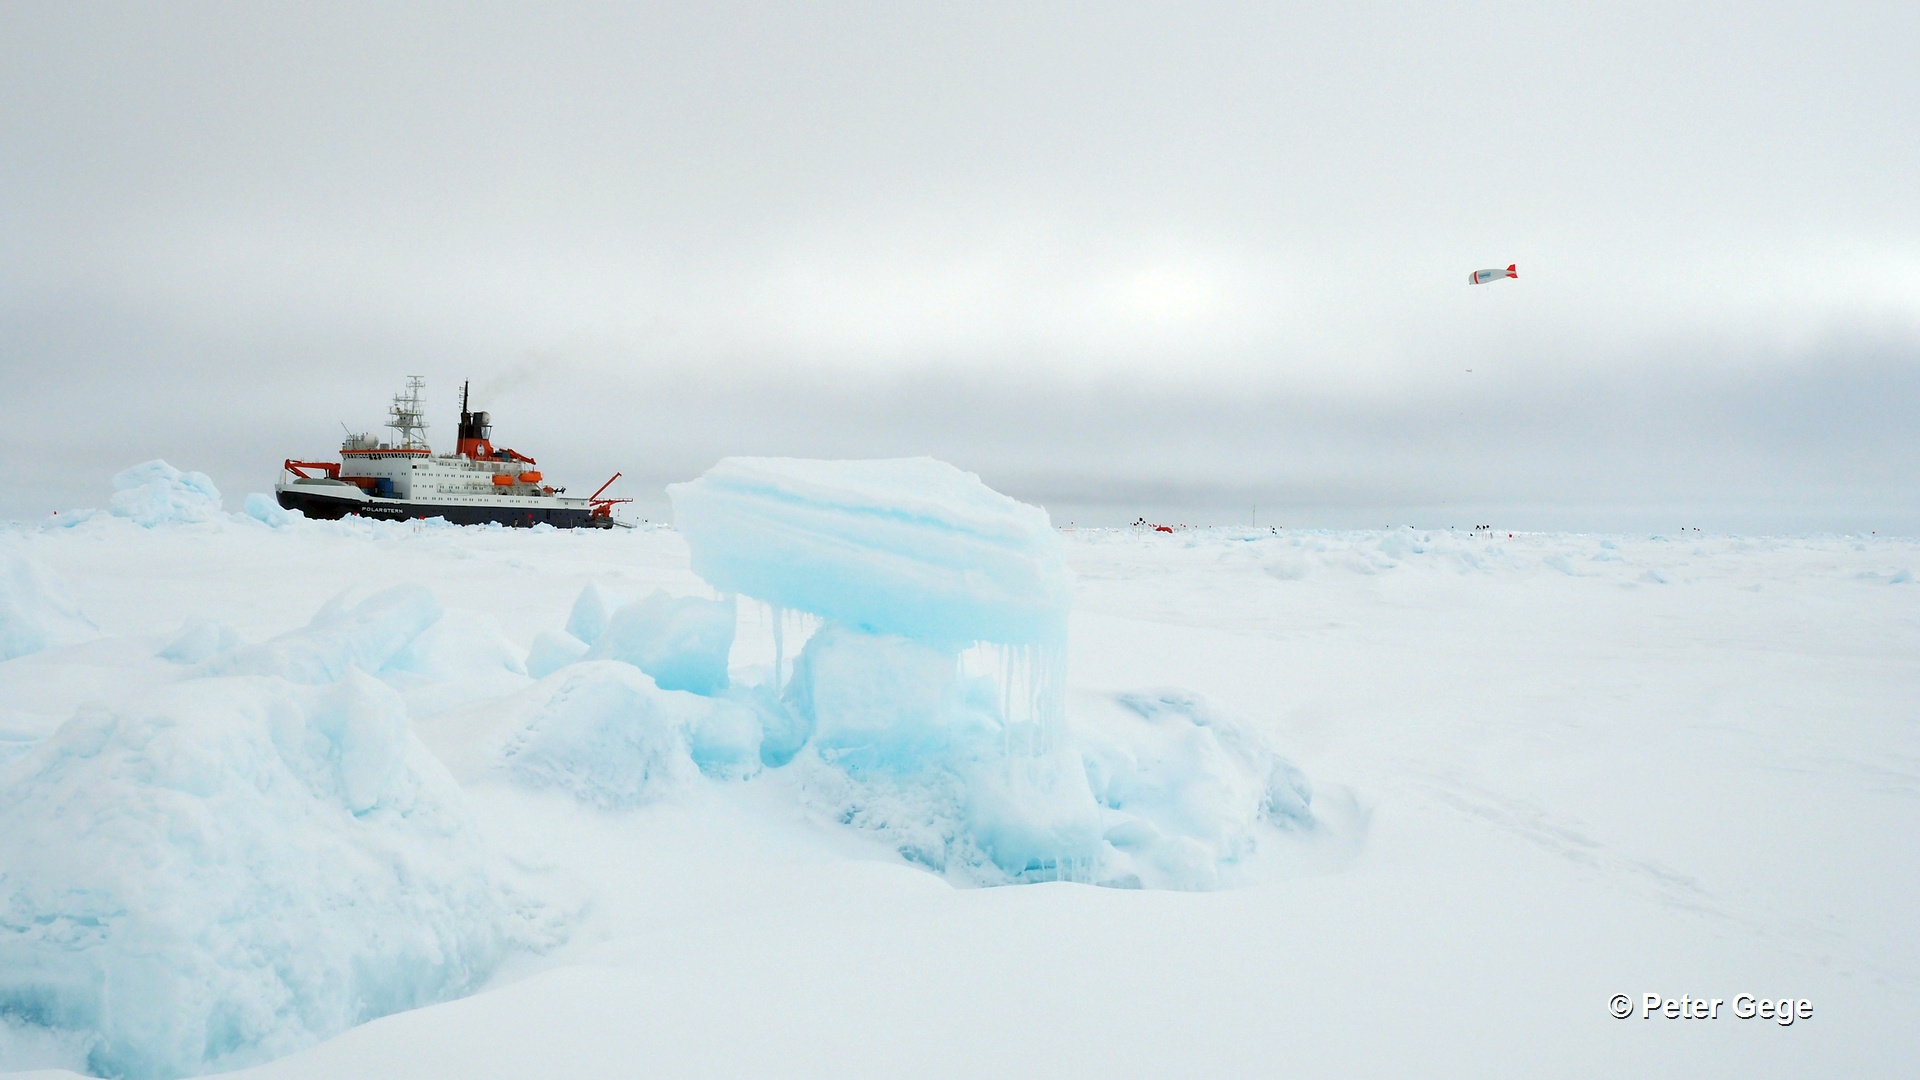 The German research vessel Polarstern and the ice camp during PASCAL 2017.